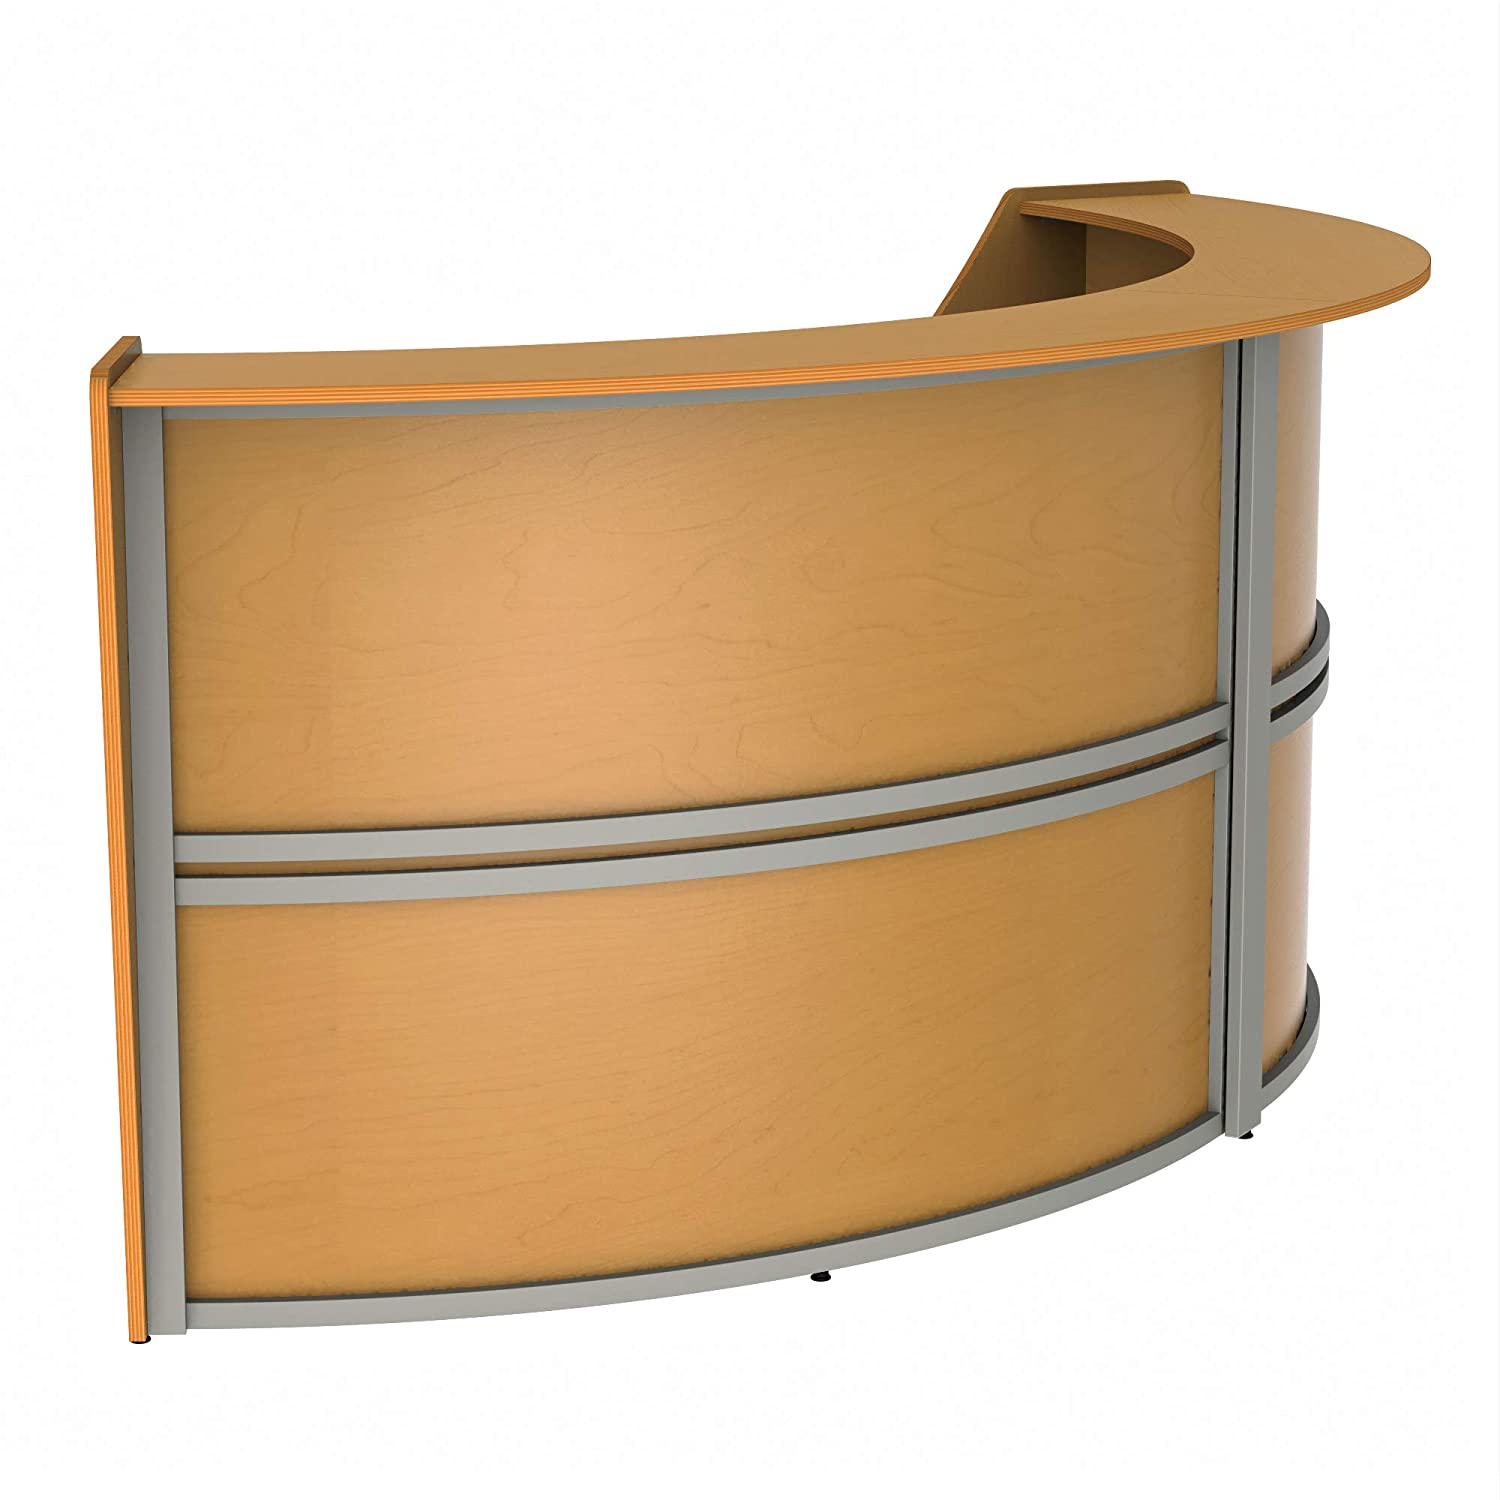 Amazon.com: Linea Italia Curved Reception Desk, Madera ...